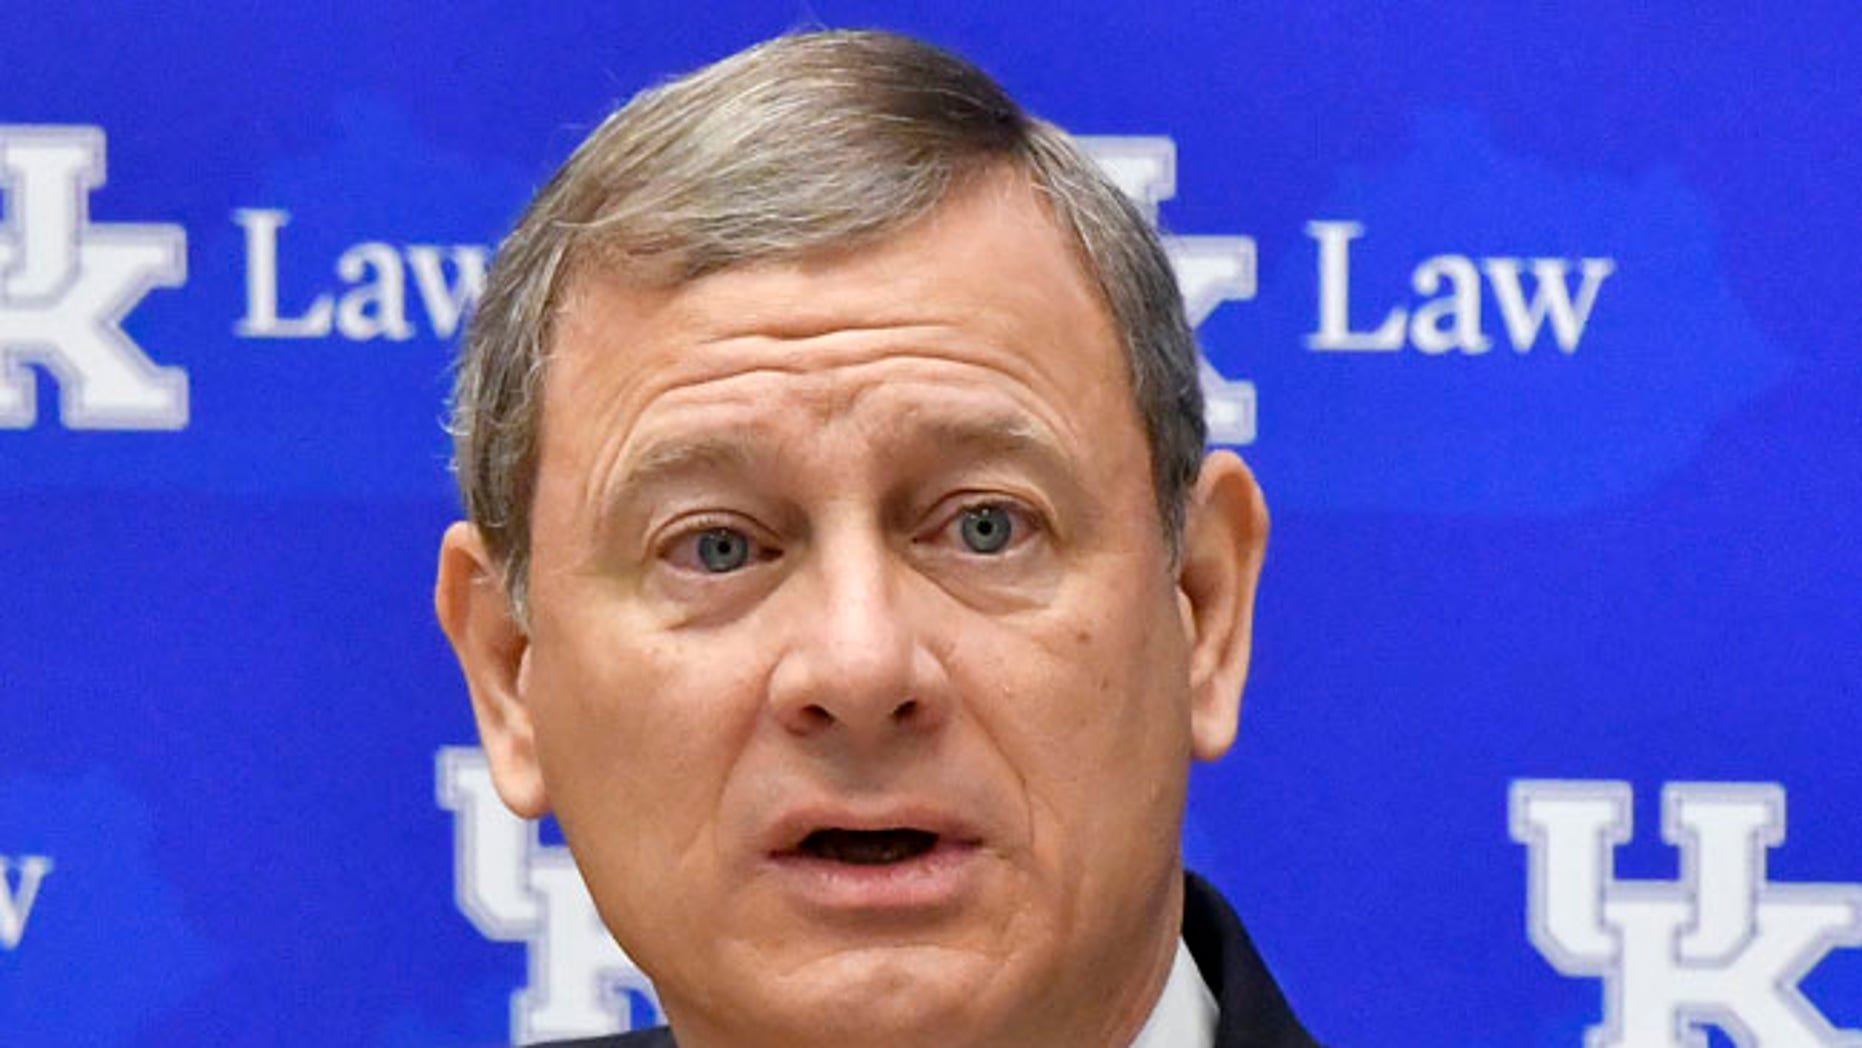 Chief Justice John Roberts has weighed in on a clash over a mysterious grand jury subpoena.